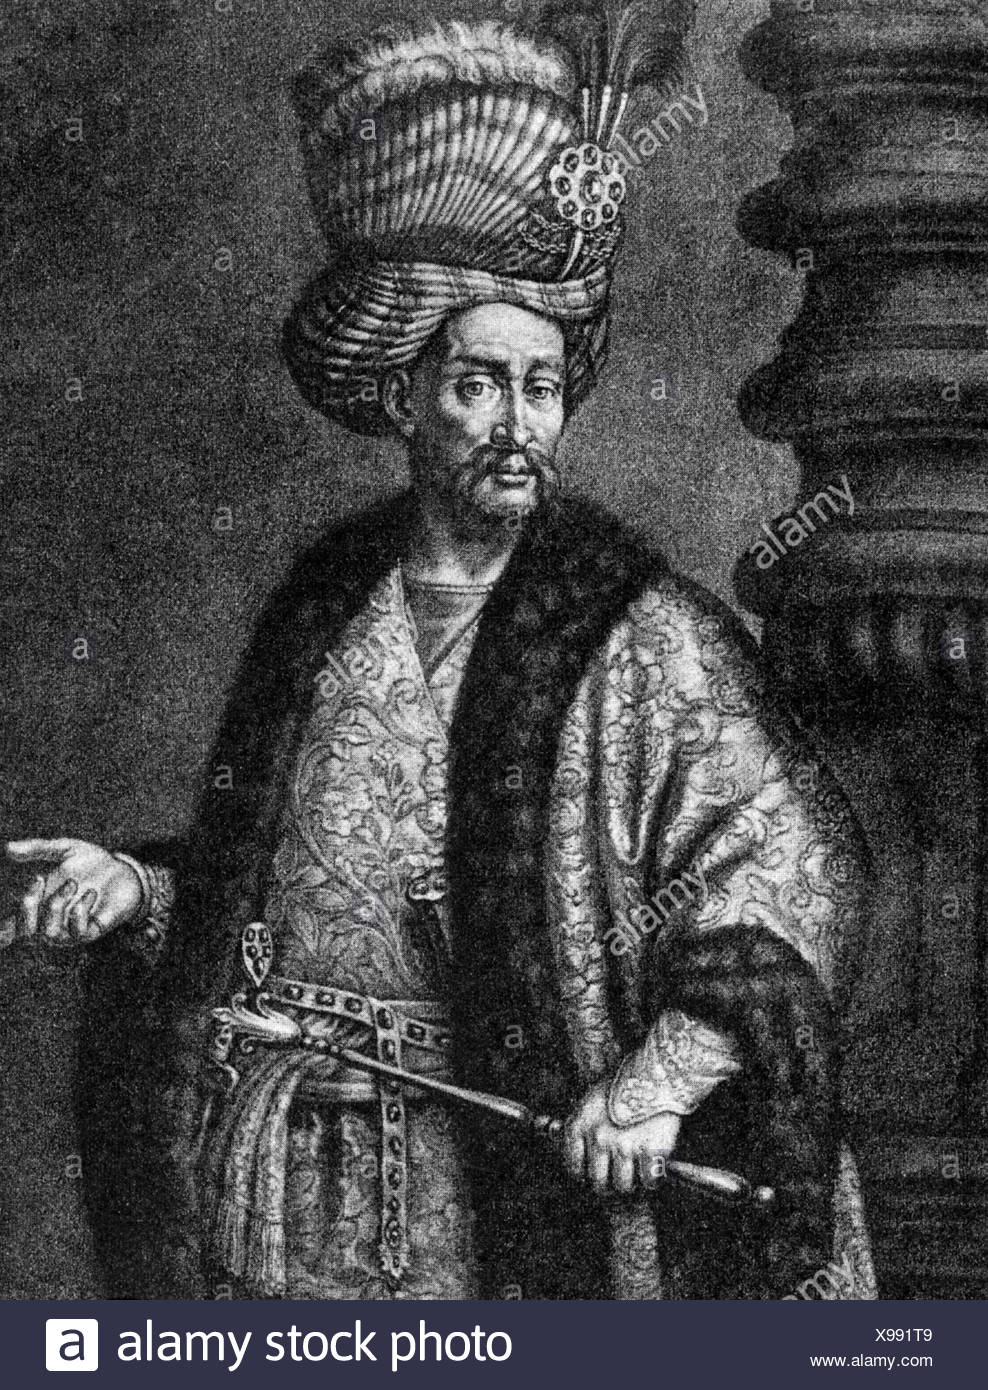 Nader Shah, 22.10.1726 - 19.6.1747, Shah of Iran 8.3.1736 -19.6.1747,  copper engraving by J. J. Haid, 18th century, , Artist's Copyright has not  to be ...